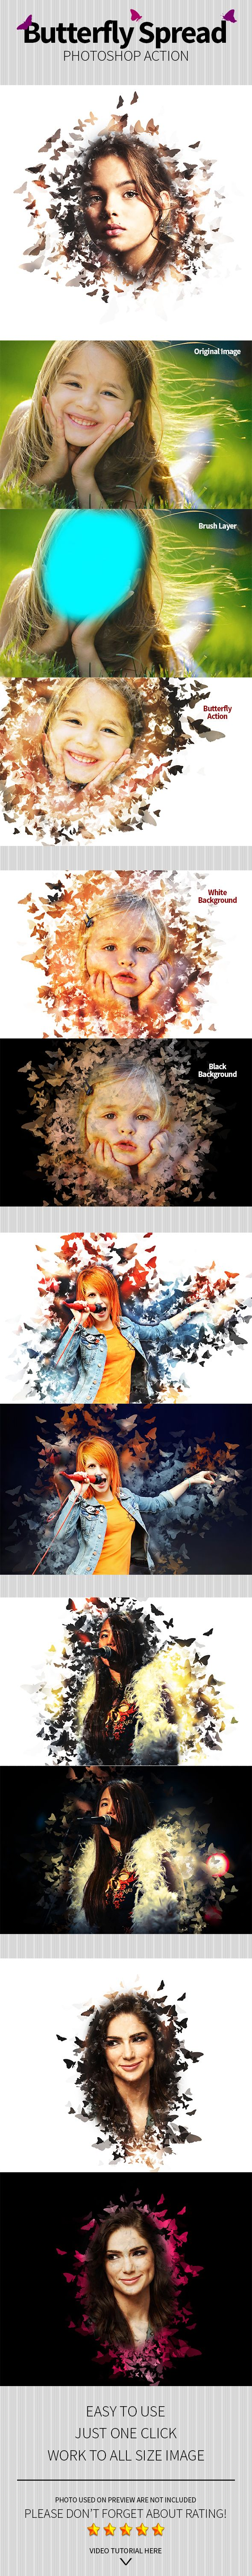 Butterfly Spread Photoshop Action. Download here: http://graphicriver.net/item/butterfly-spread-photoshop-action/14688874?ref=ksioks